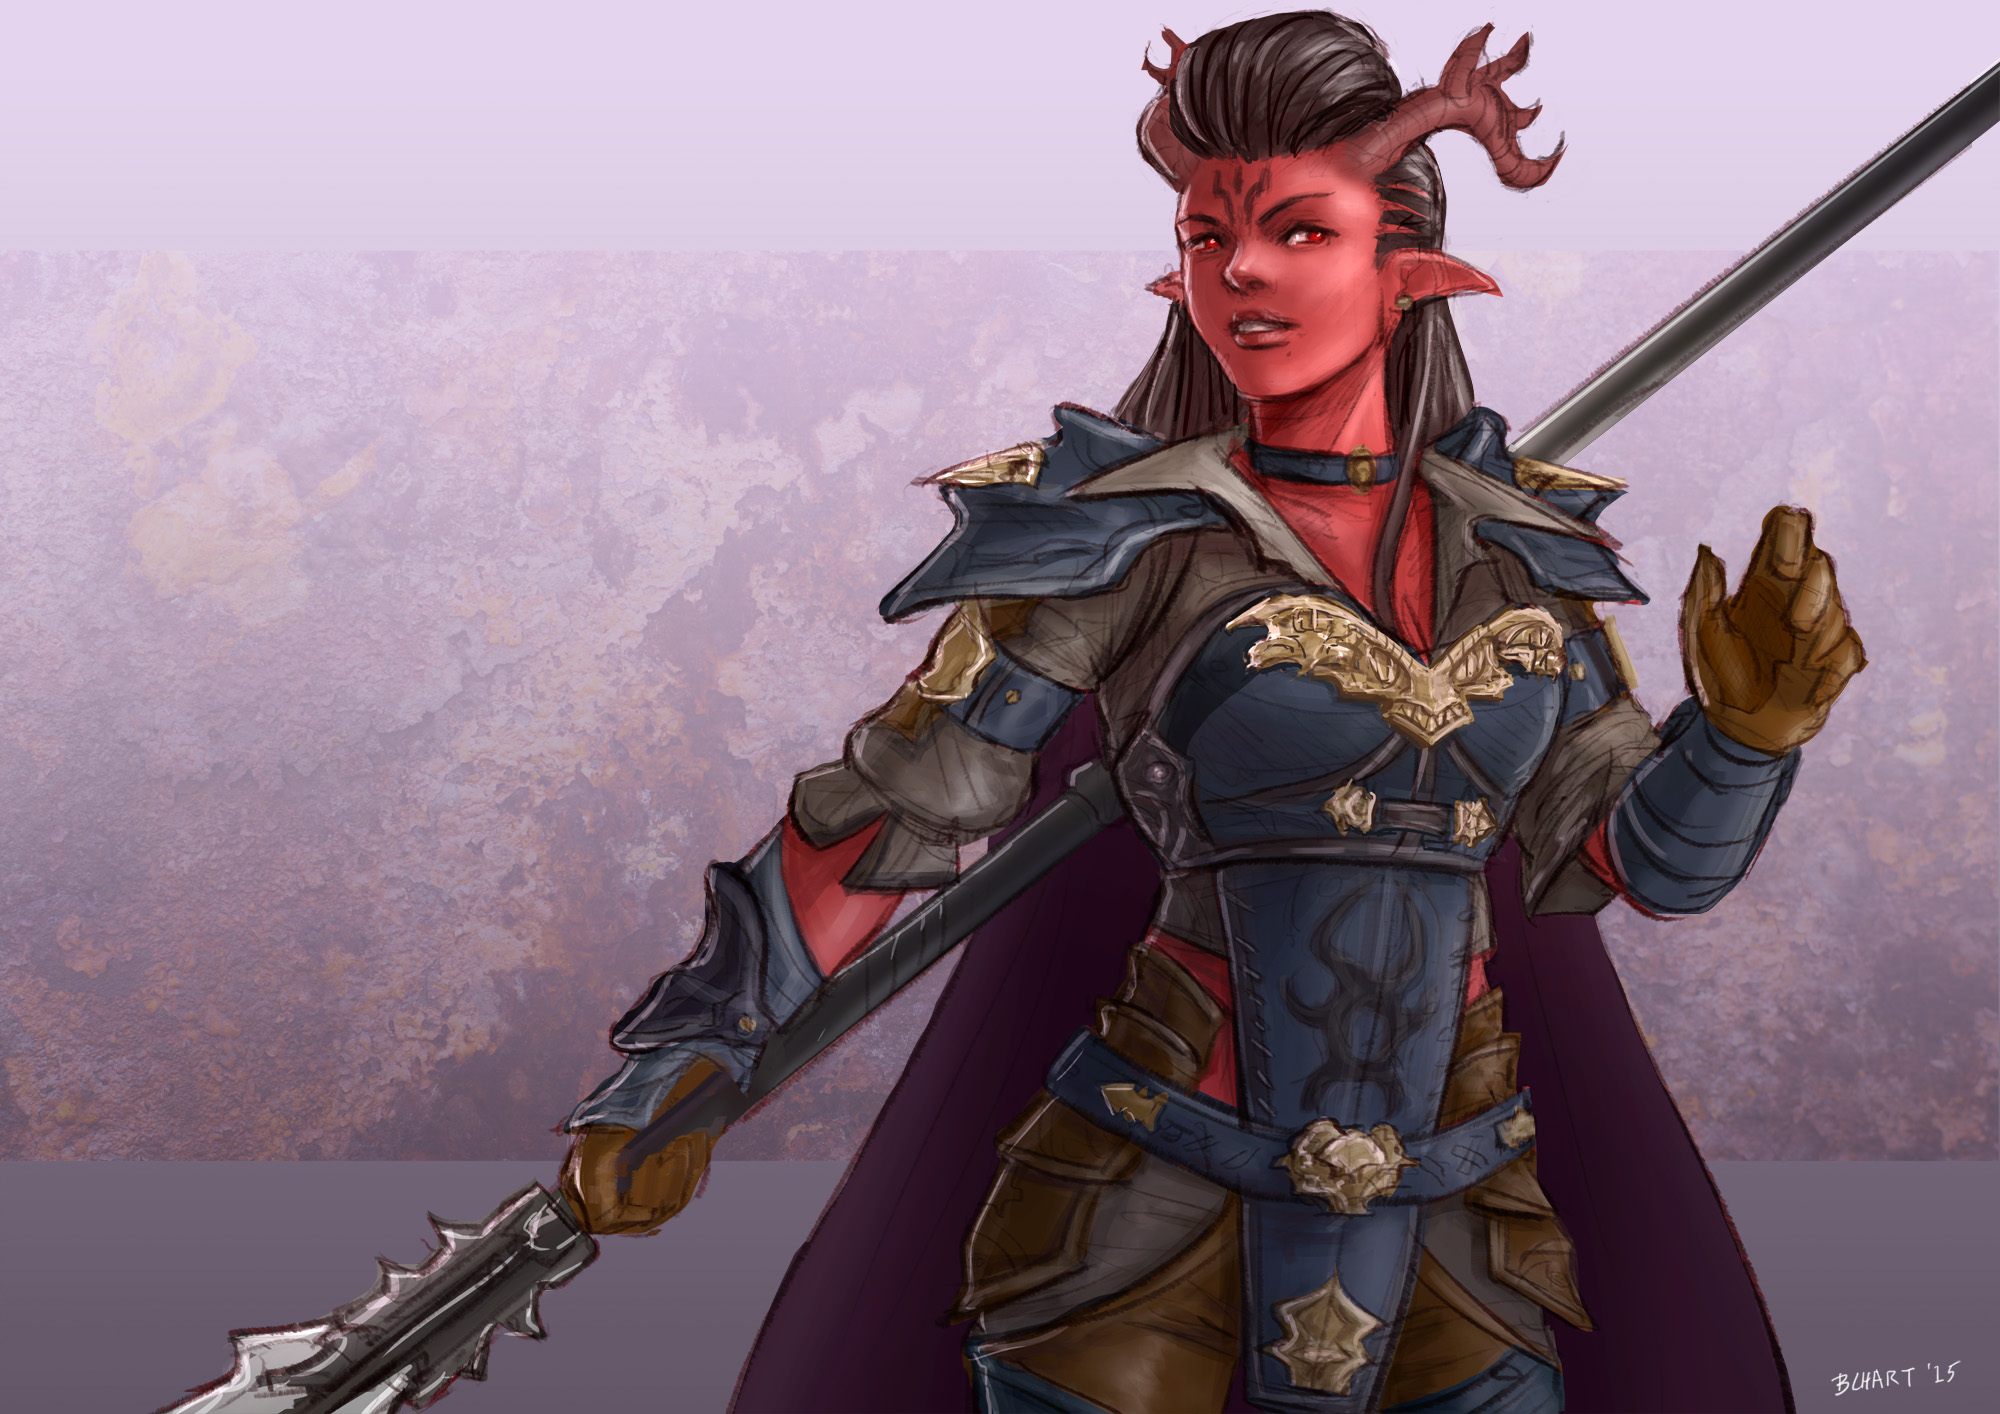 Female Tiefling Fighter by bchart